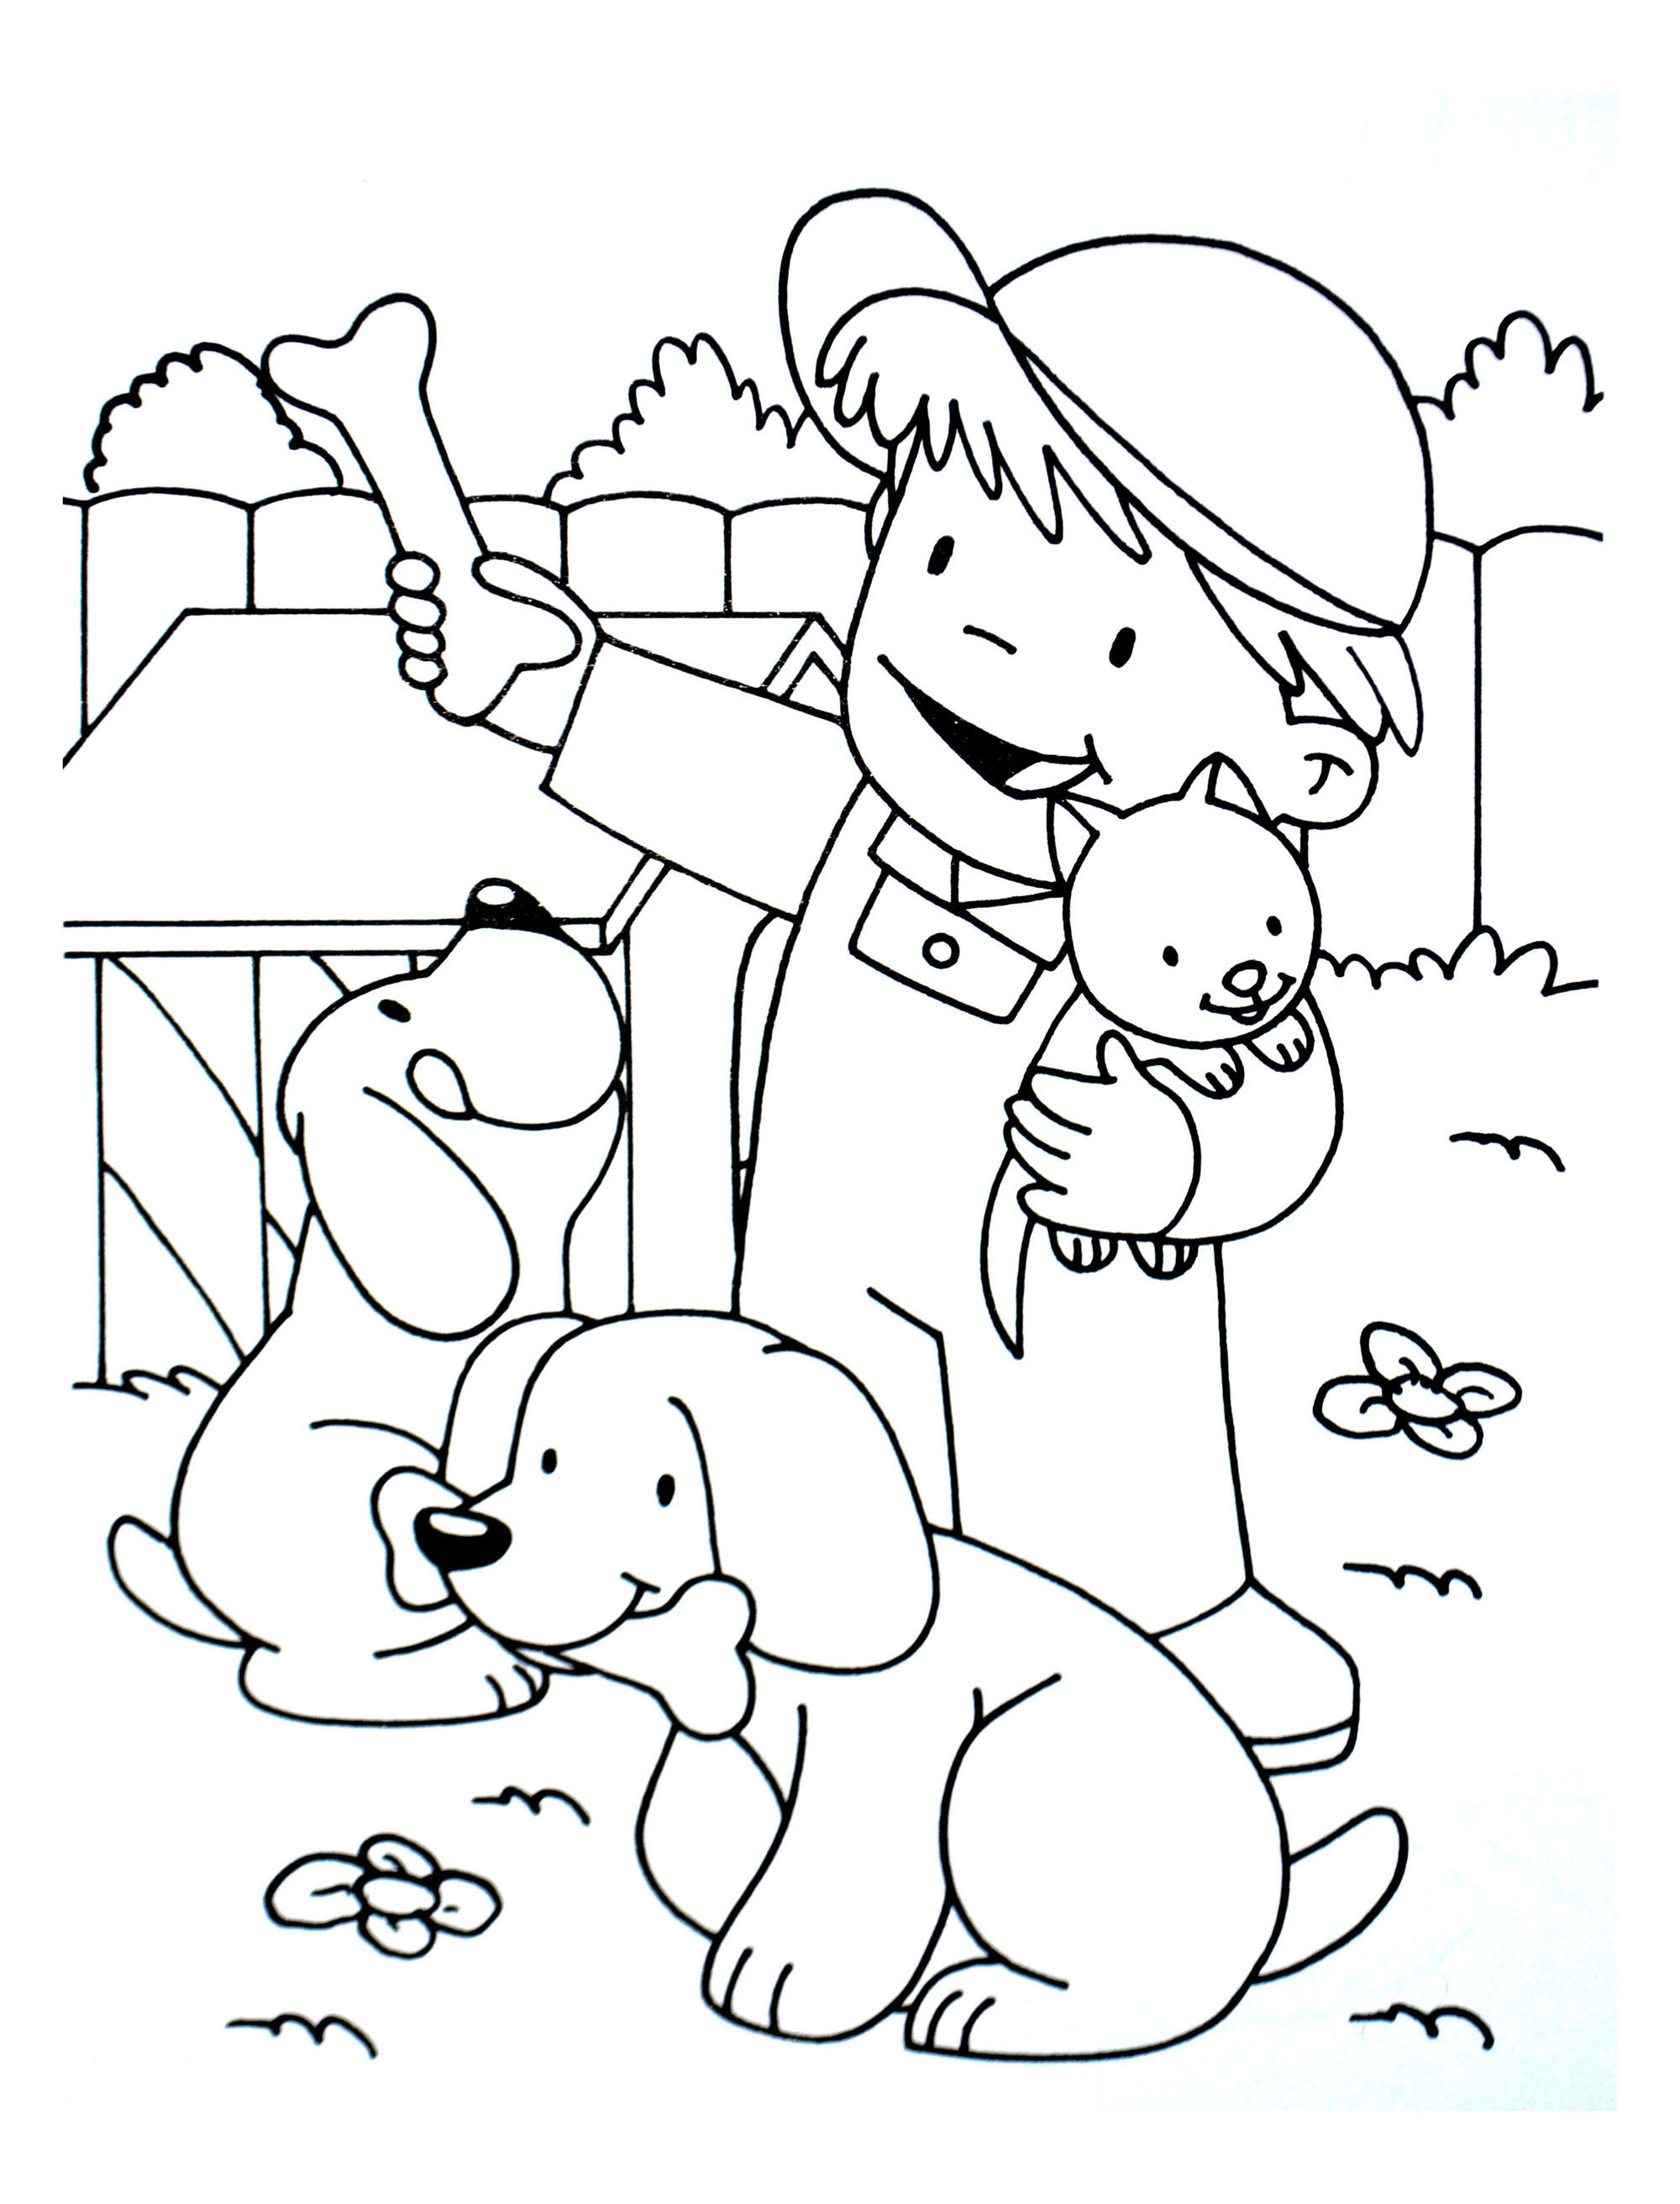 Coloring Kid With A Cat And Two Dogs Free